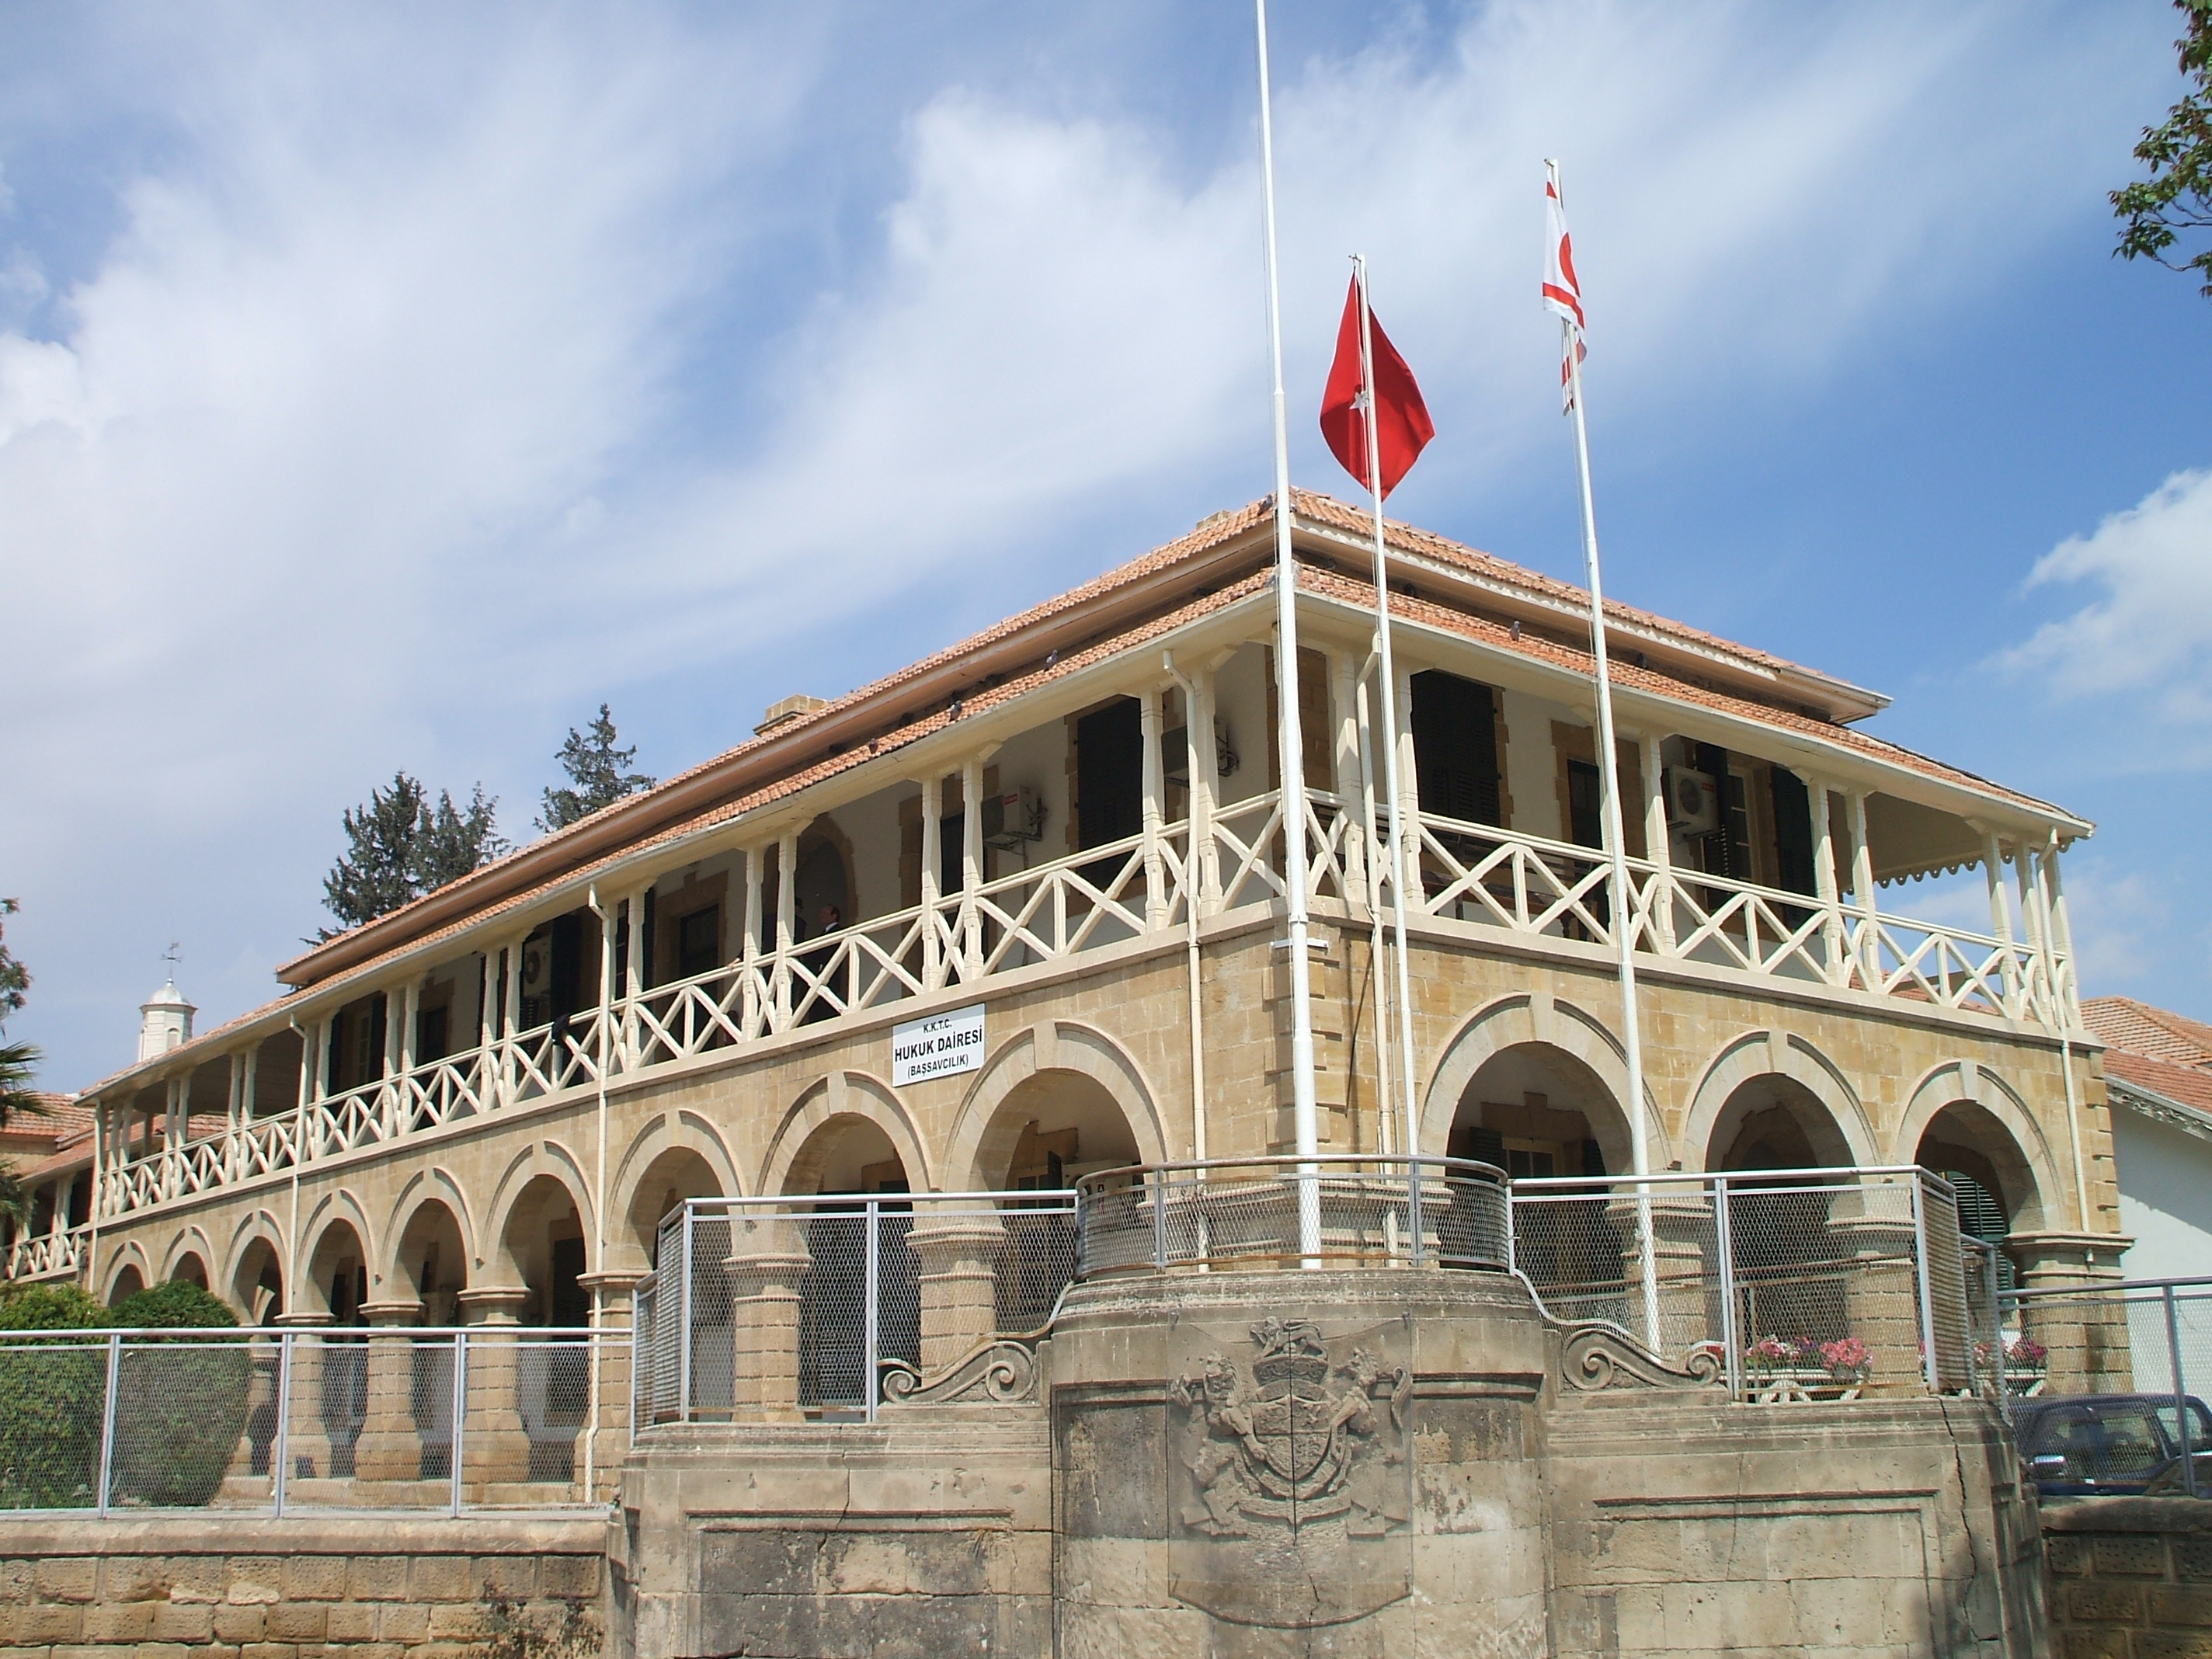 Photo Credit http://www.wikiwand.com/en/Northern_Cyprus